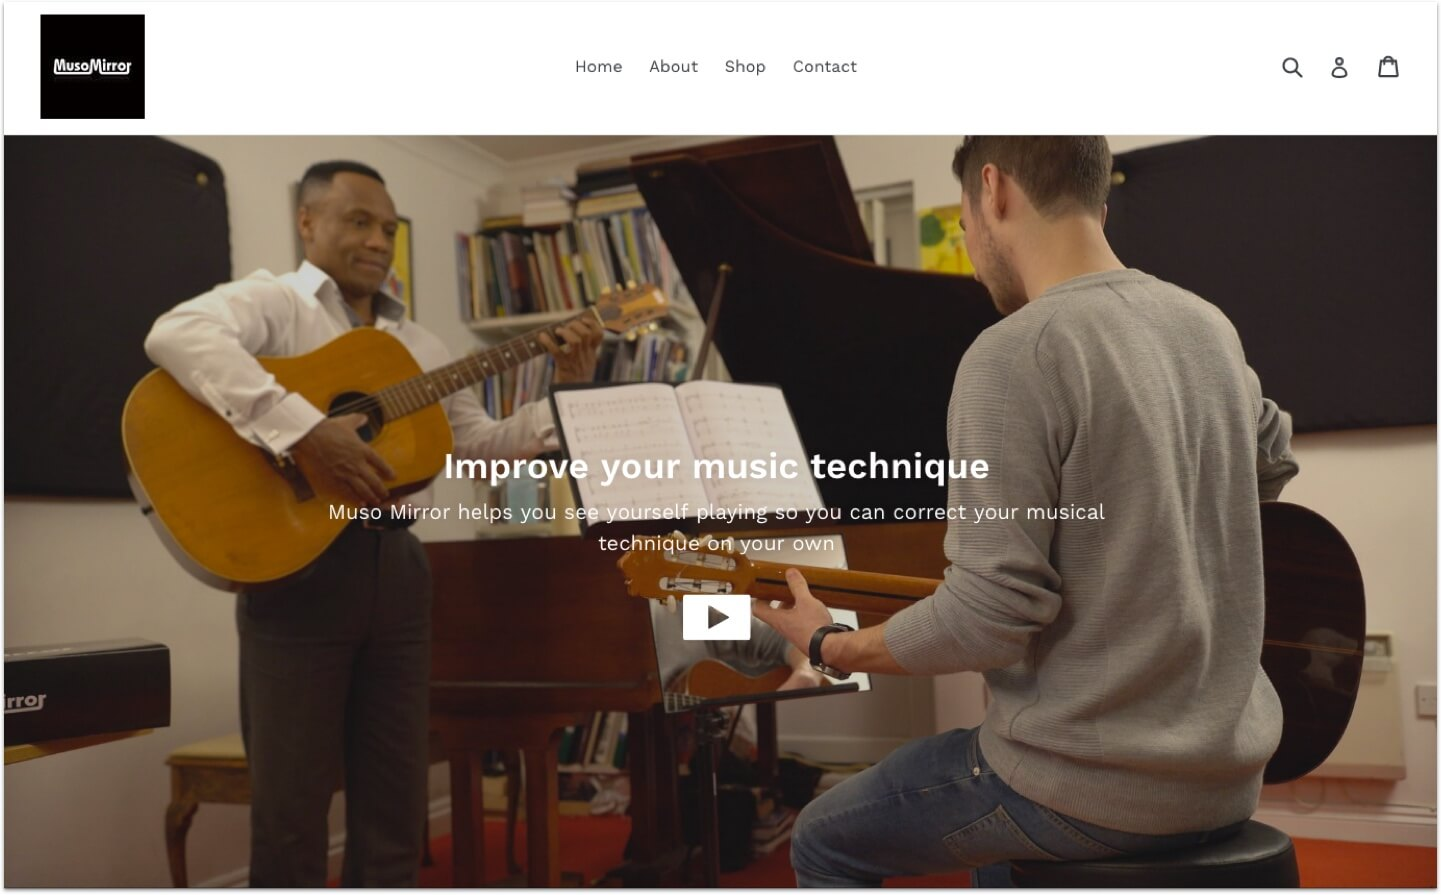 Home page for the Muso Mirror eCommerce site